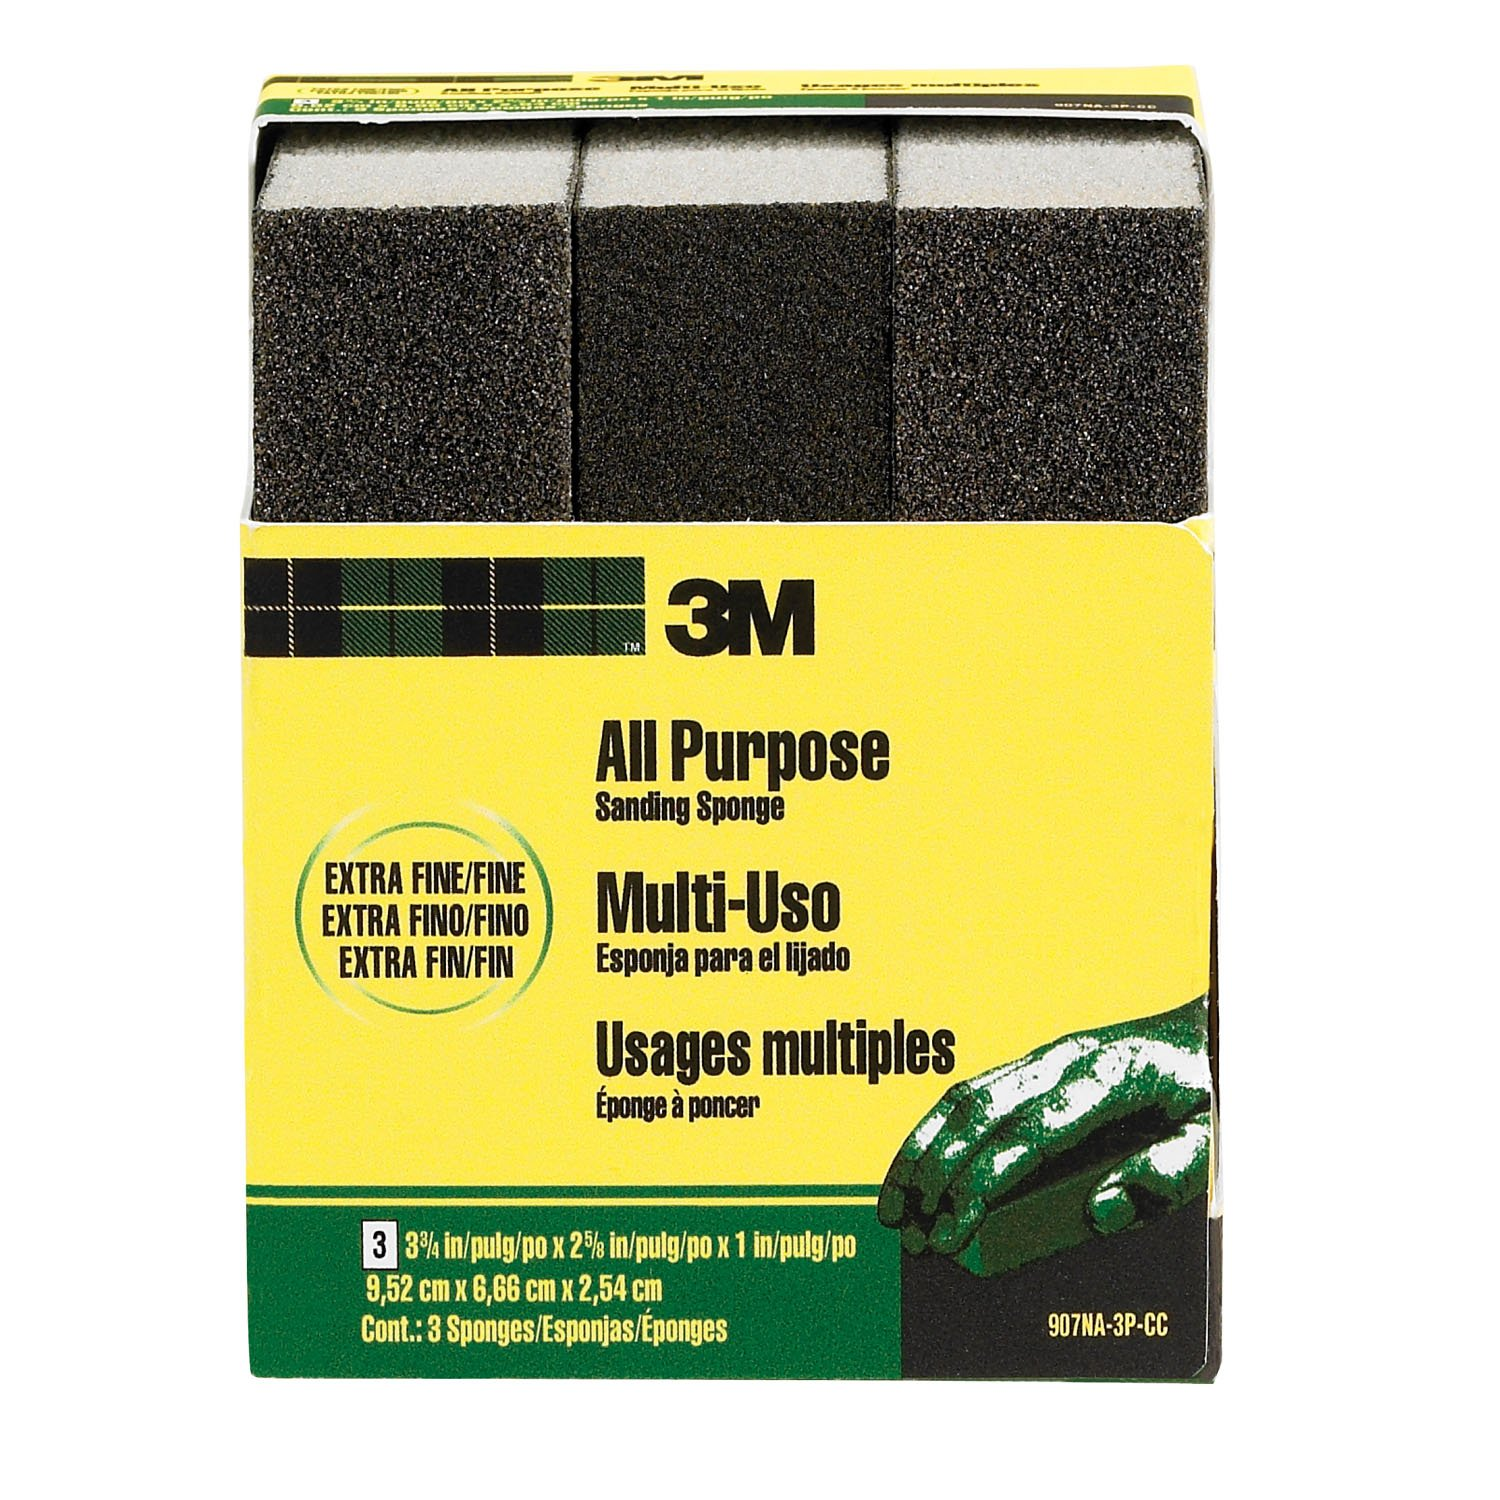 3.75-Inch by 2.625-Inch by 1-Inch Extra Fine 3M Sanding Sponge 3-Pack 3M CHIMD 907NA-3P-CC